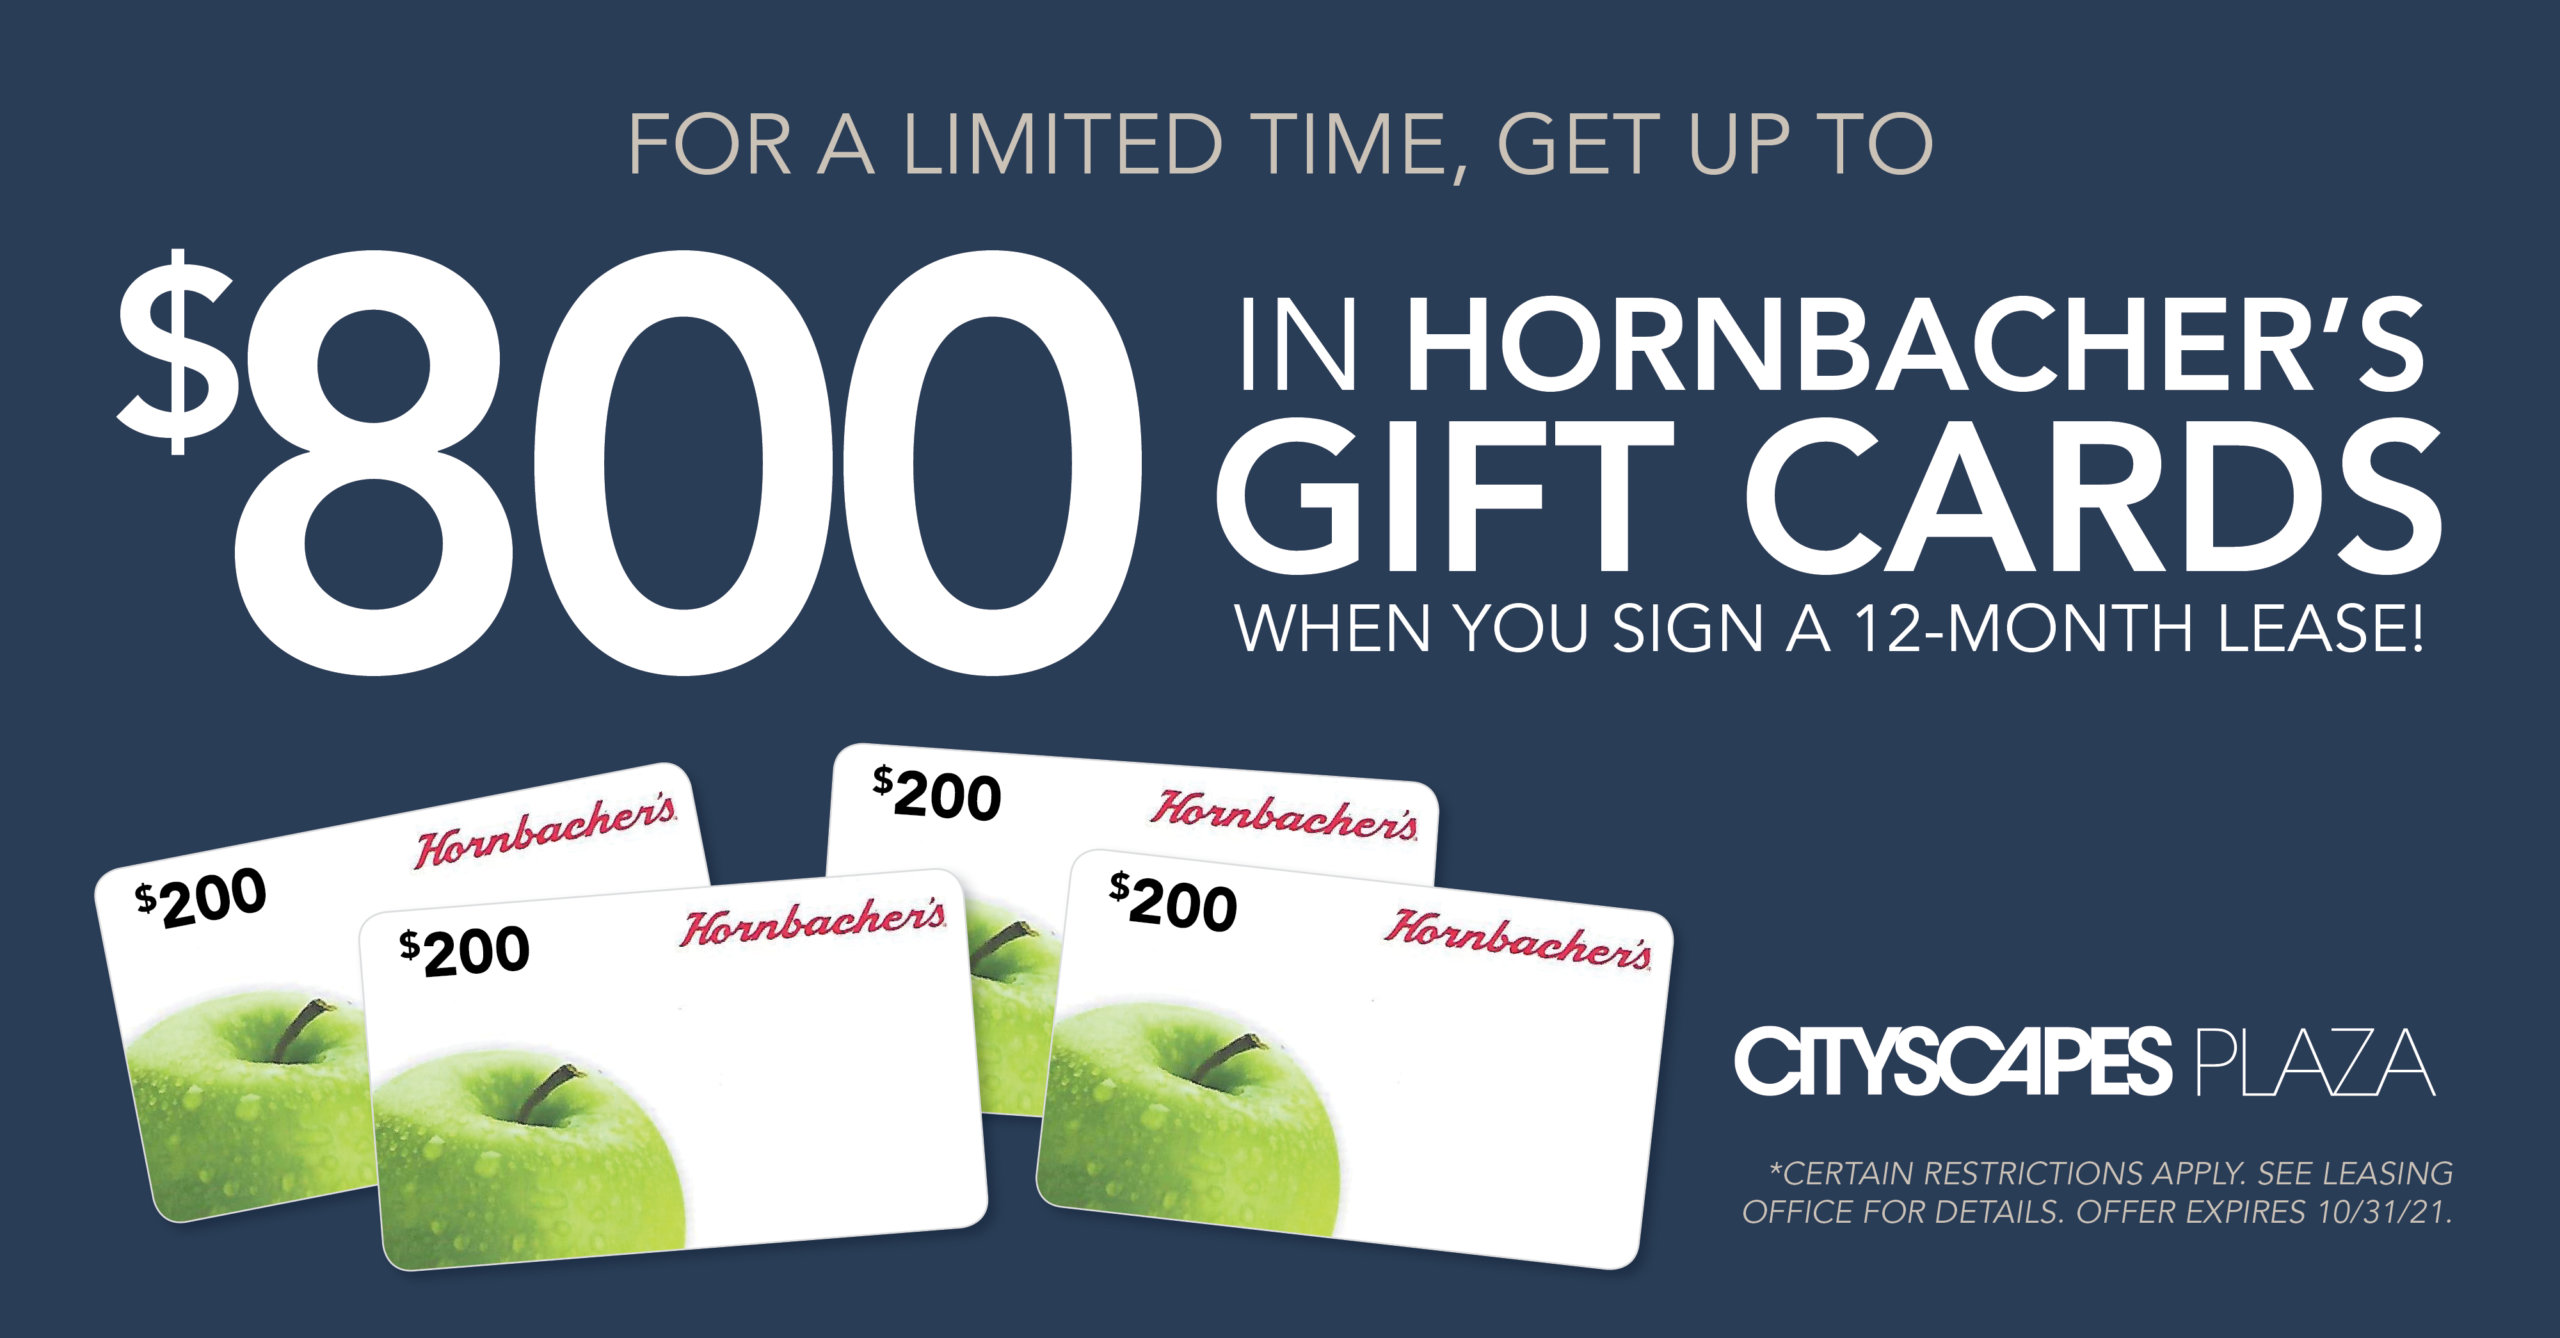 Get up to $800 in Hornbacher's Gift Cards! Certain restrictions apply.